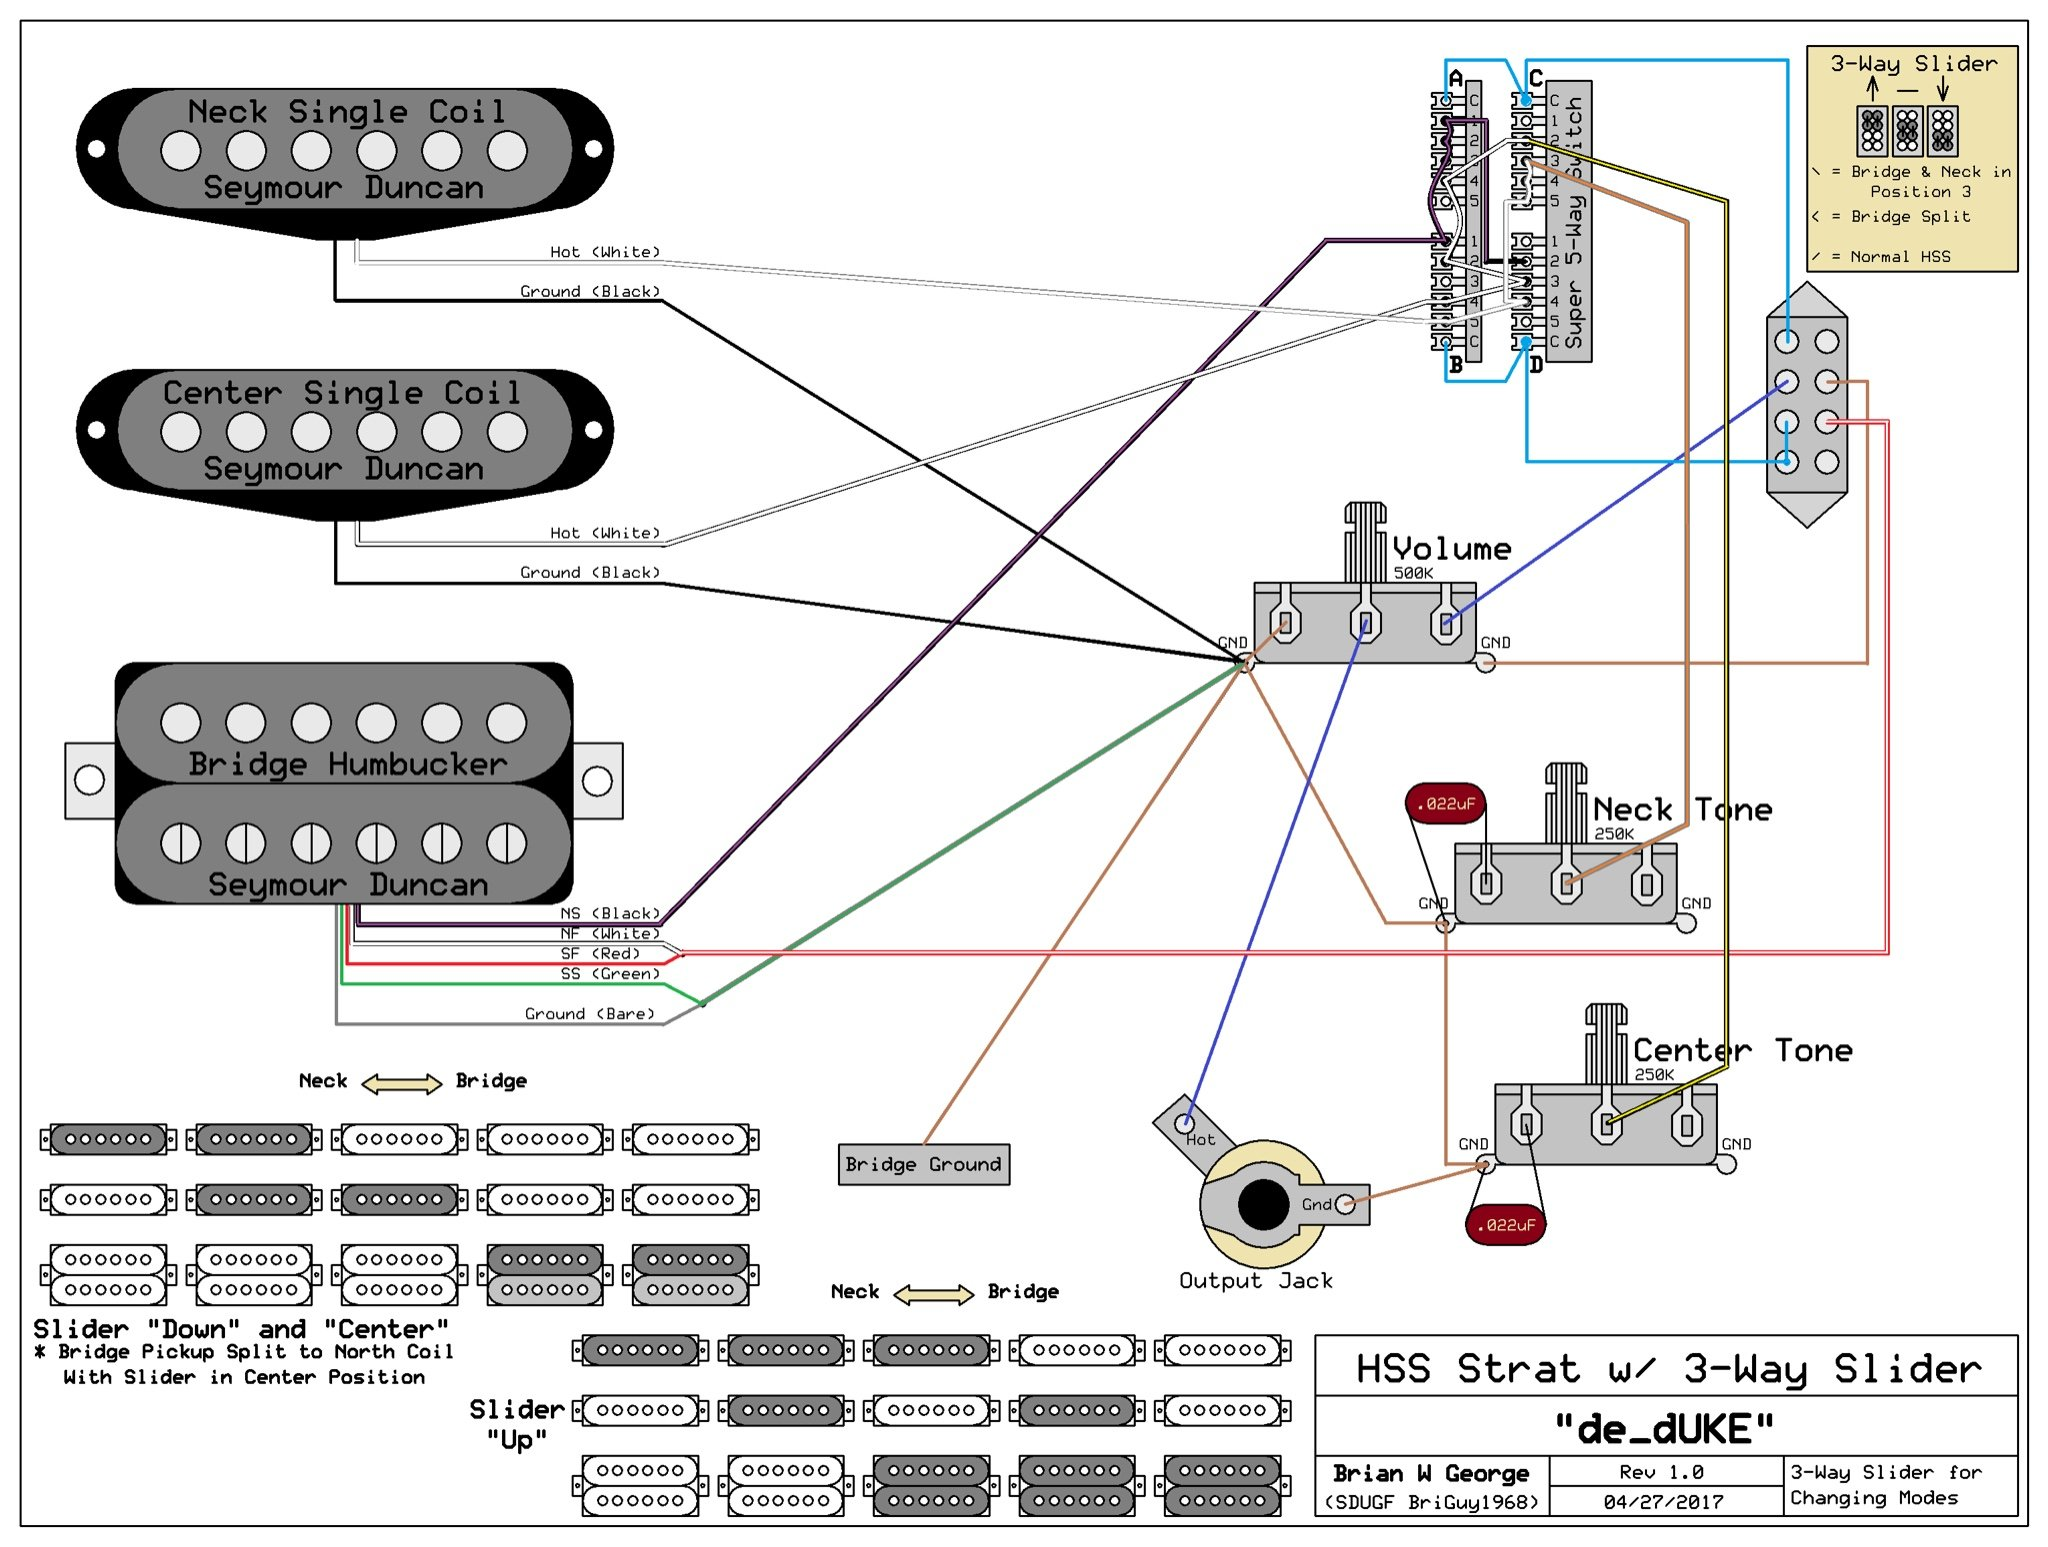 Guitar Fender Strat Wiring Guide And Troubleshooting Of Noiseless Diagrams Hss Diagram For Coil Split Using 3 Way Switch S1